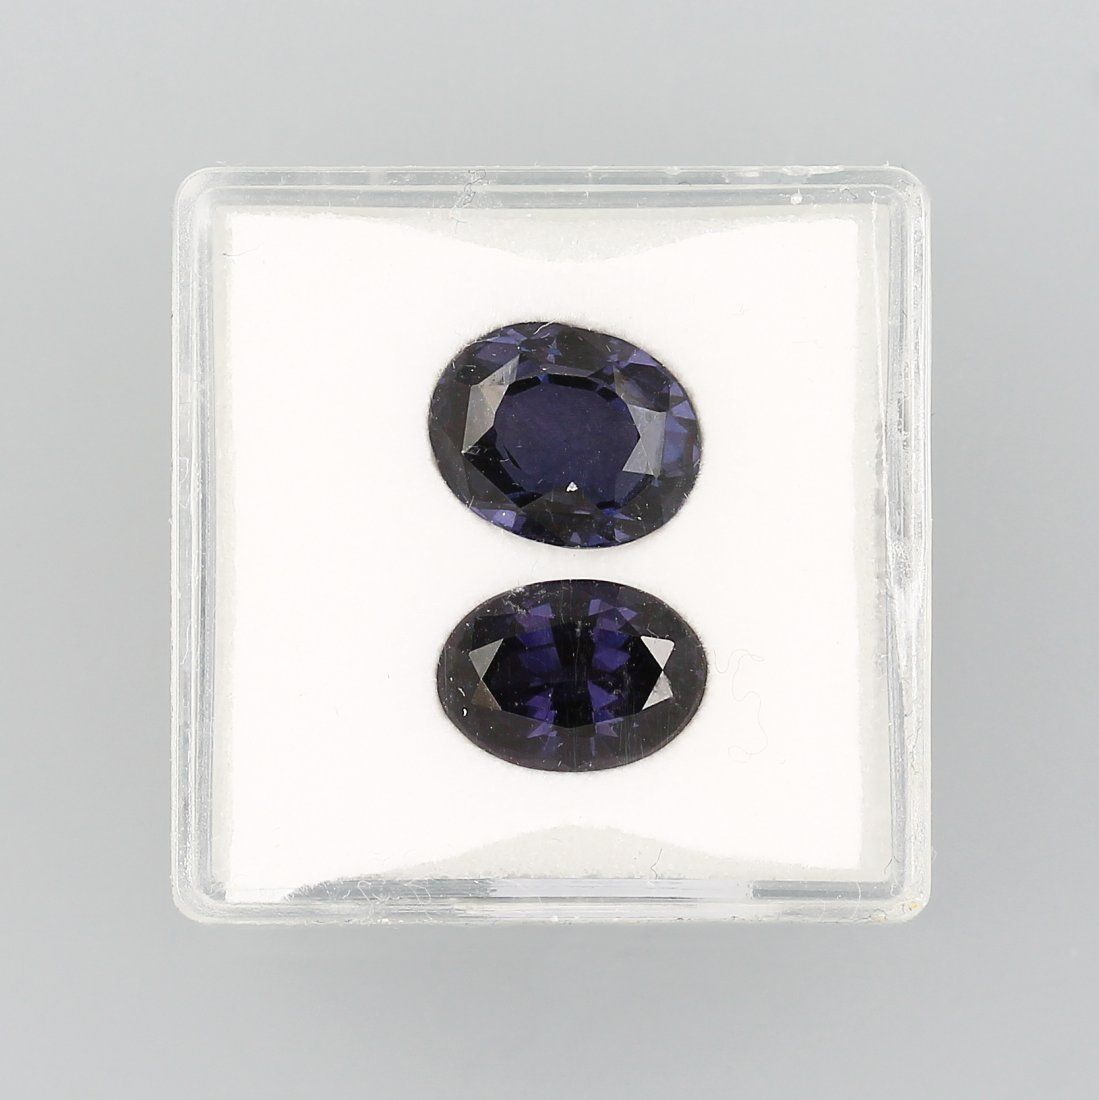 Lot 2 loose spinels total approx. 6.40 ct